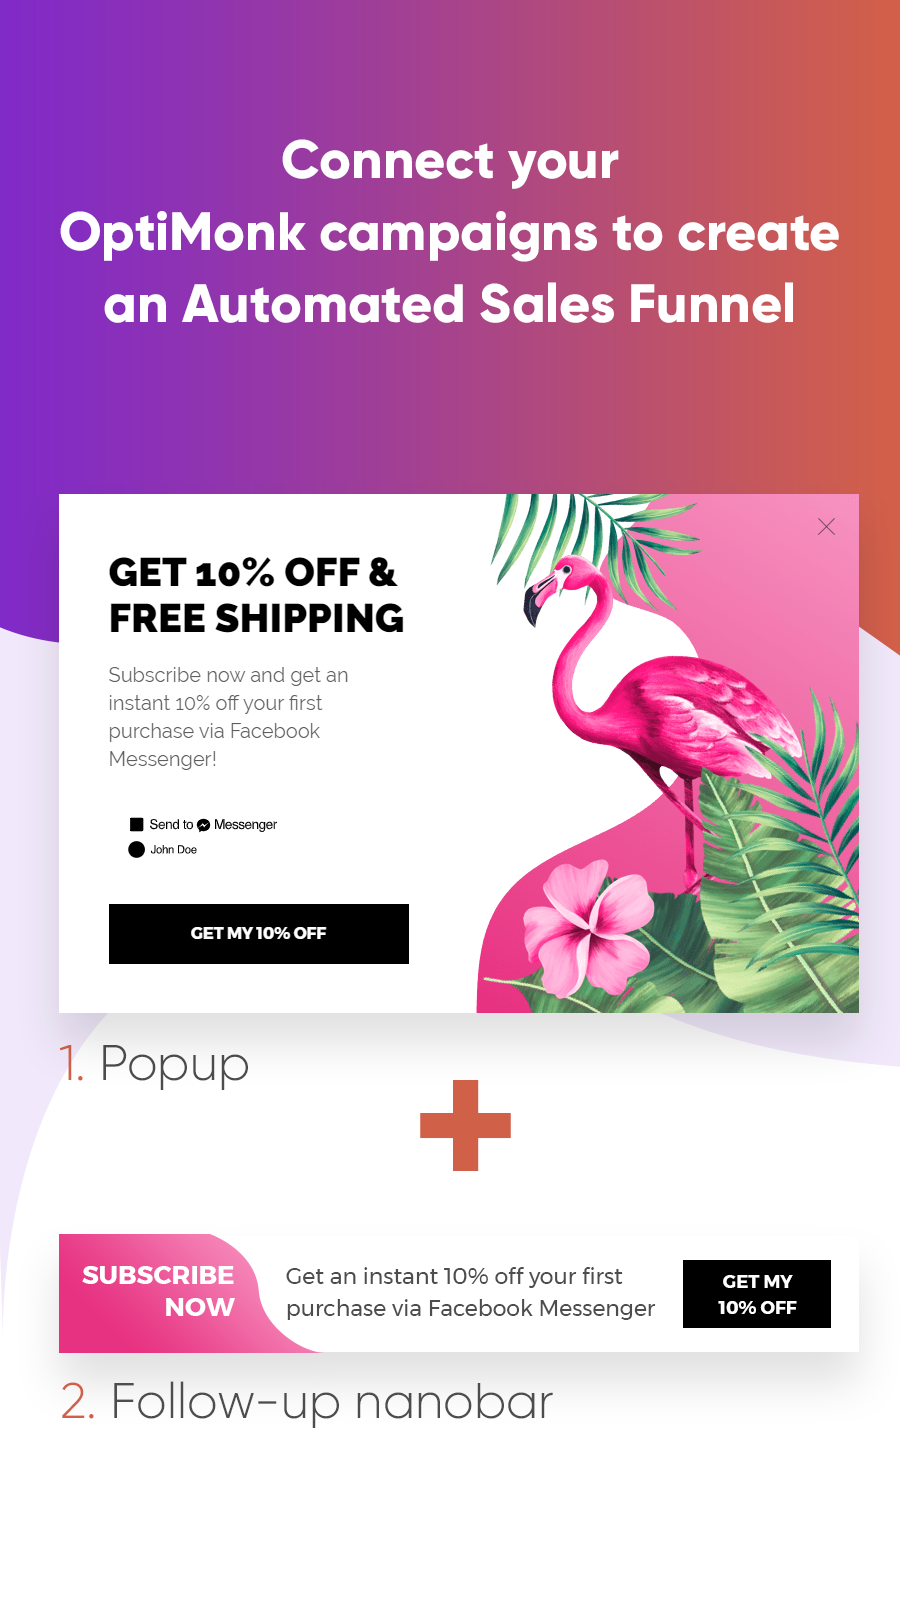 connect popups, nanobars and sidemessage to create sales funnel